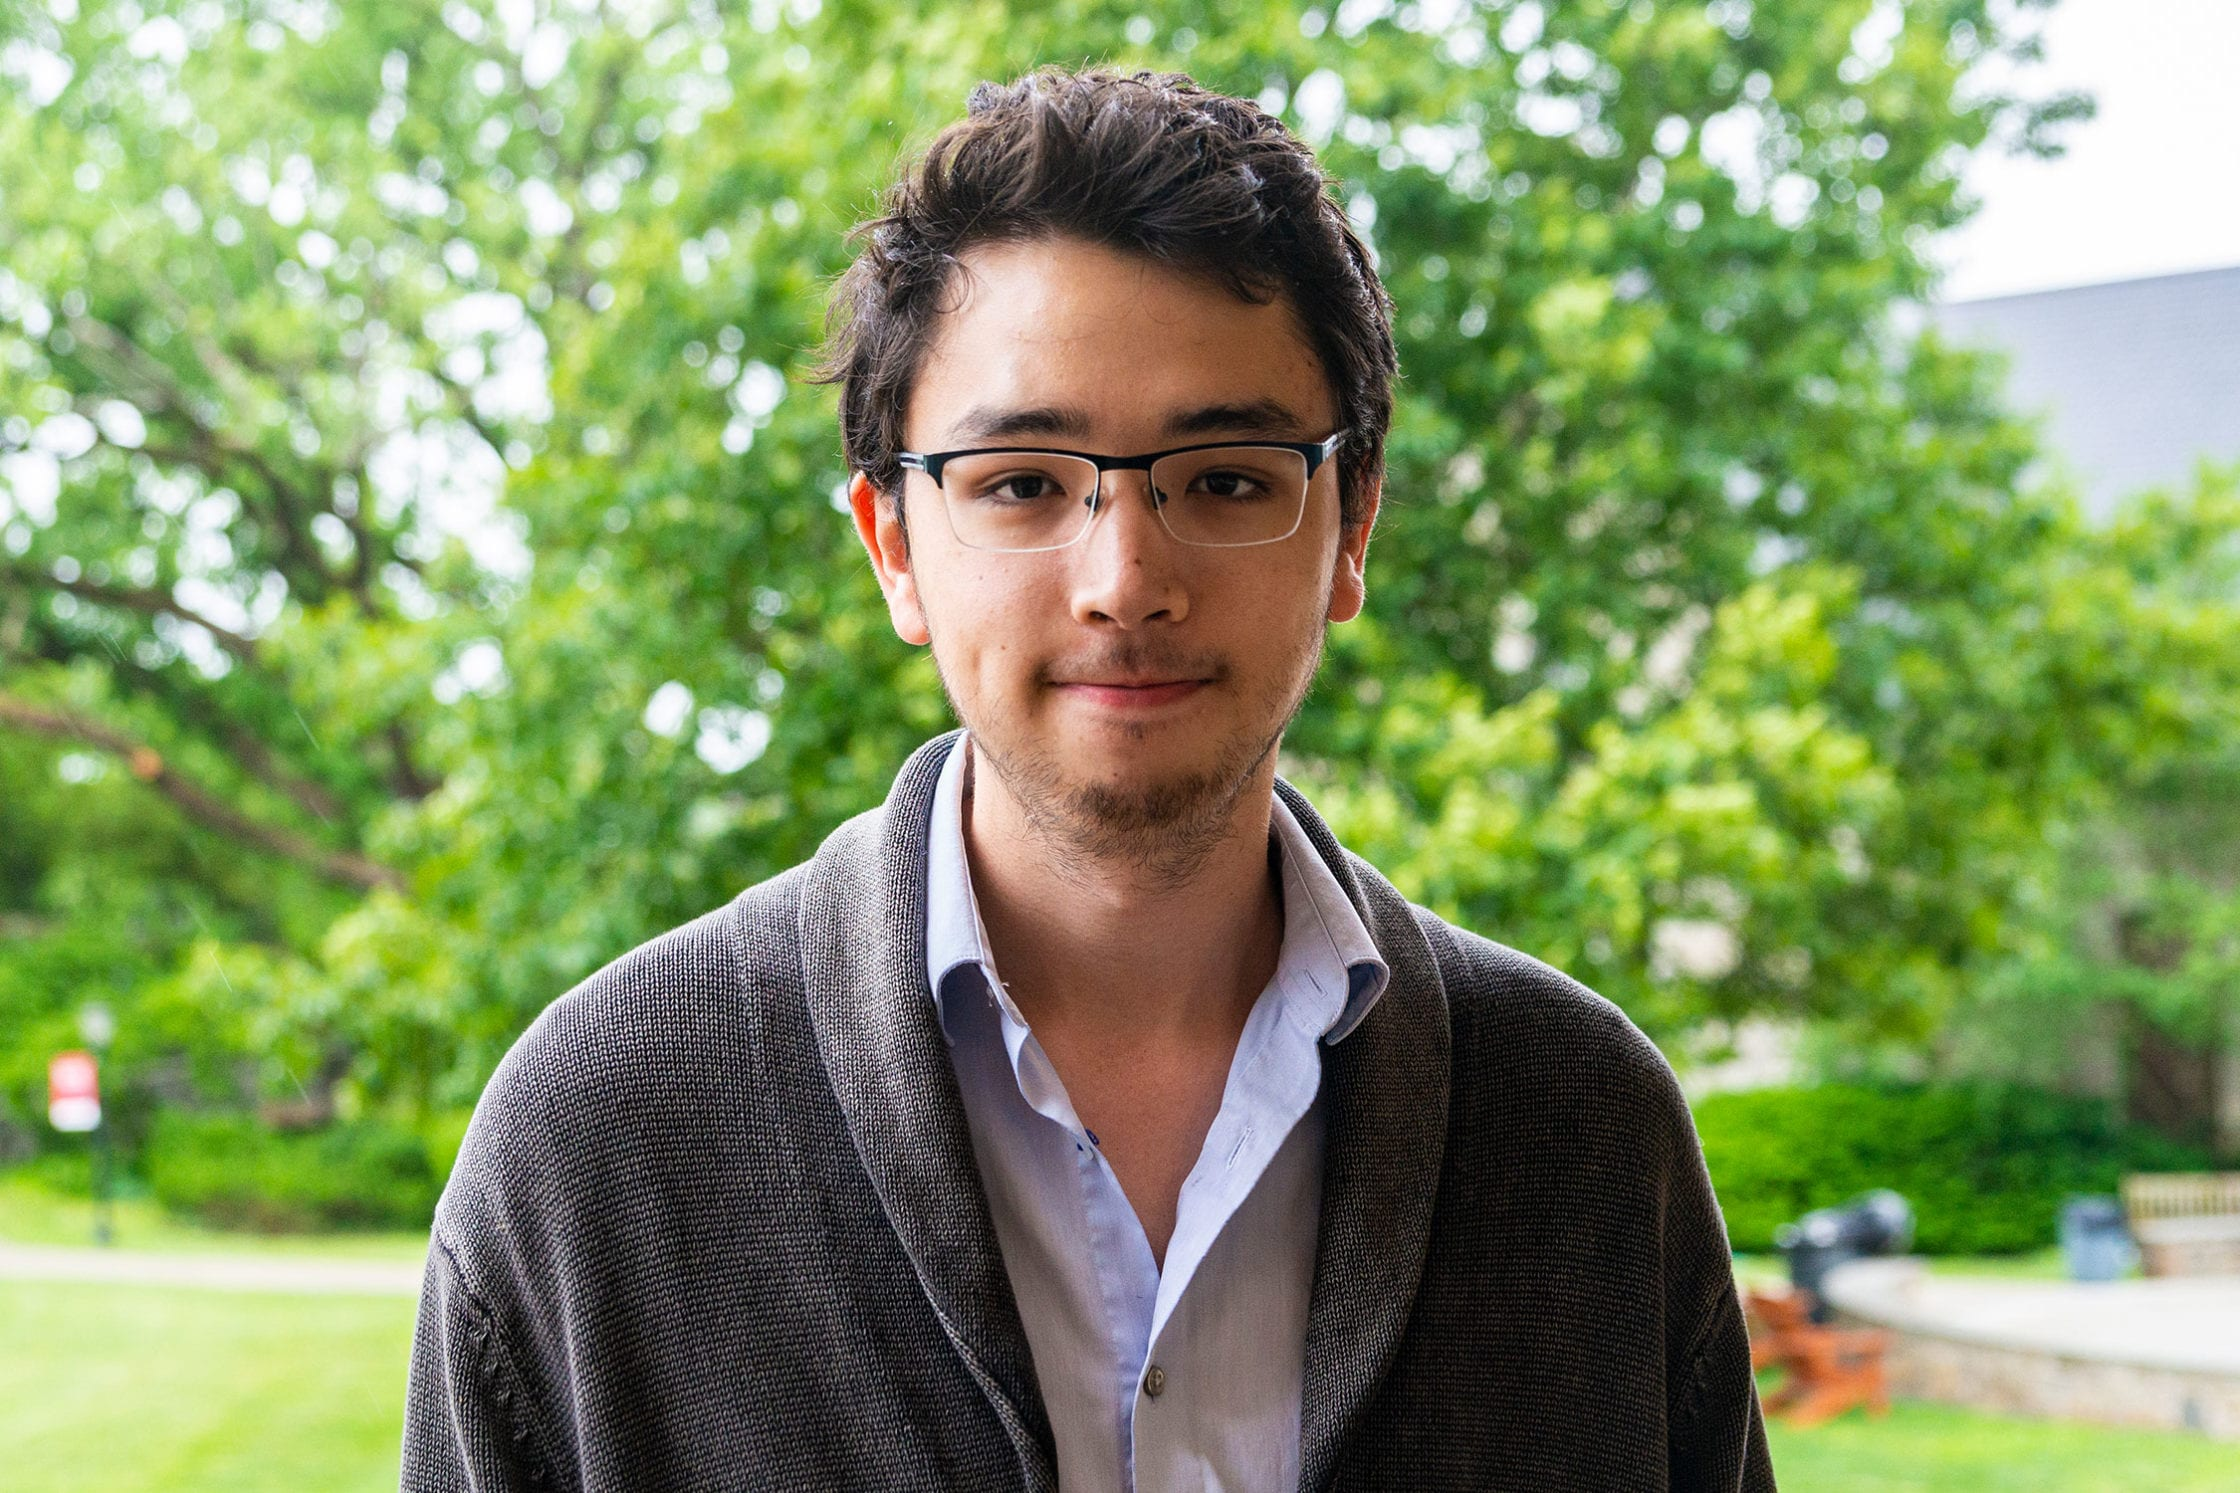 Headshot of Jonathan Sudo in front of trees.